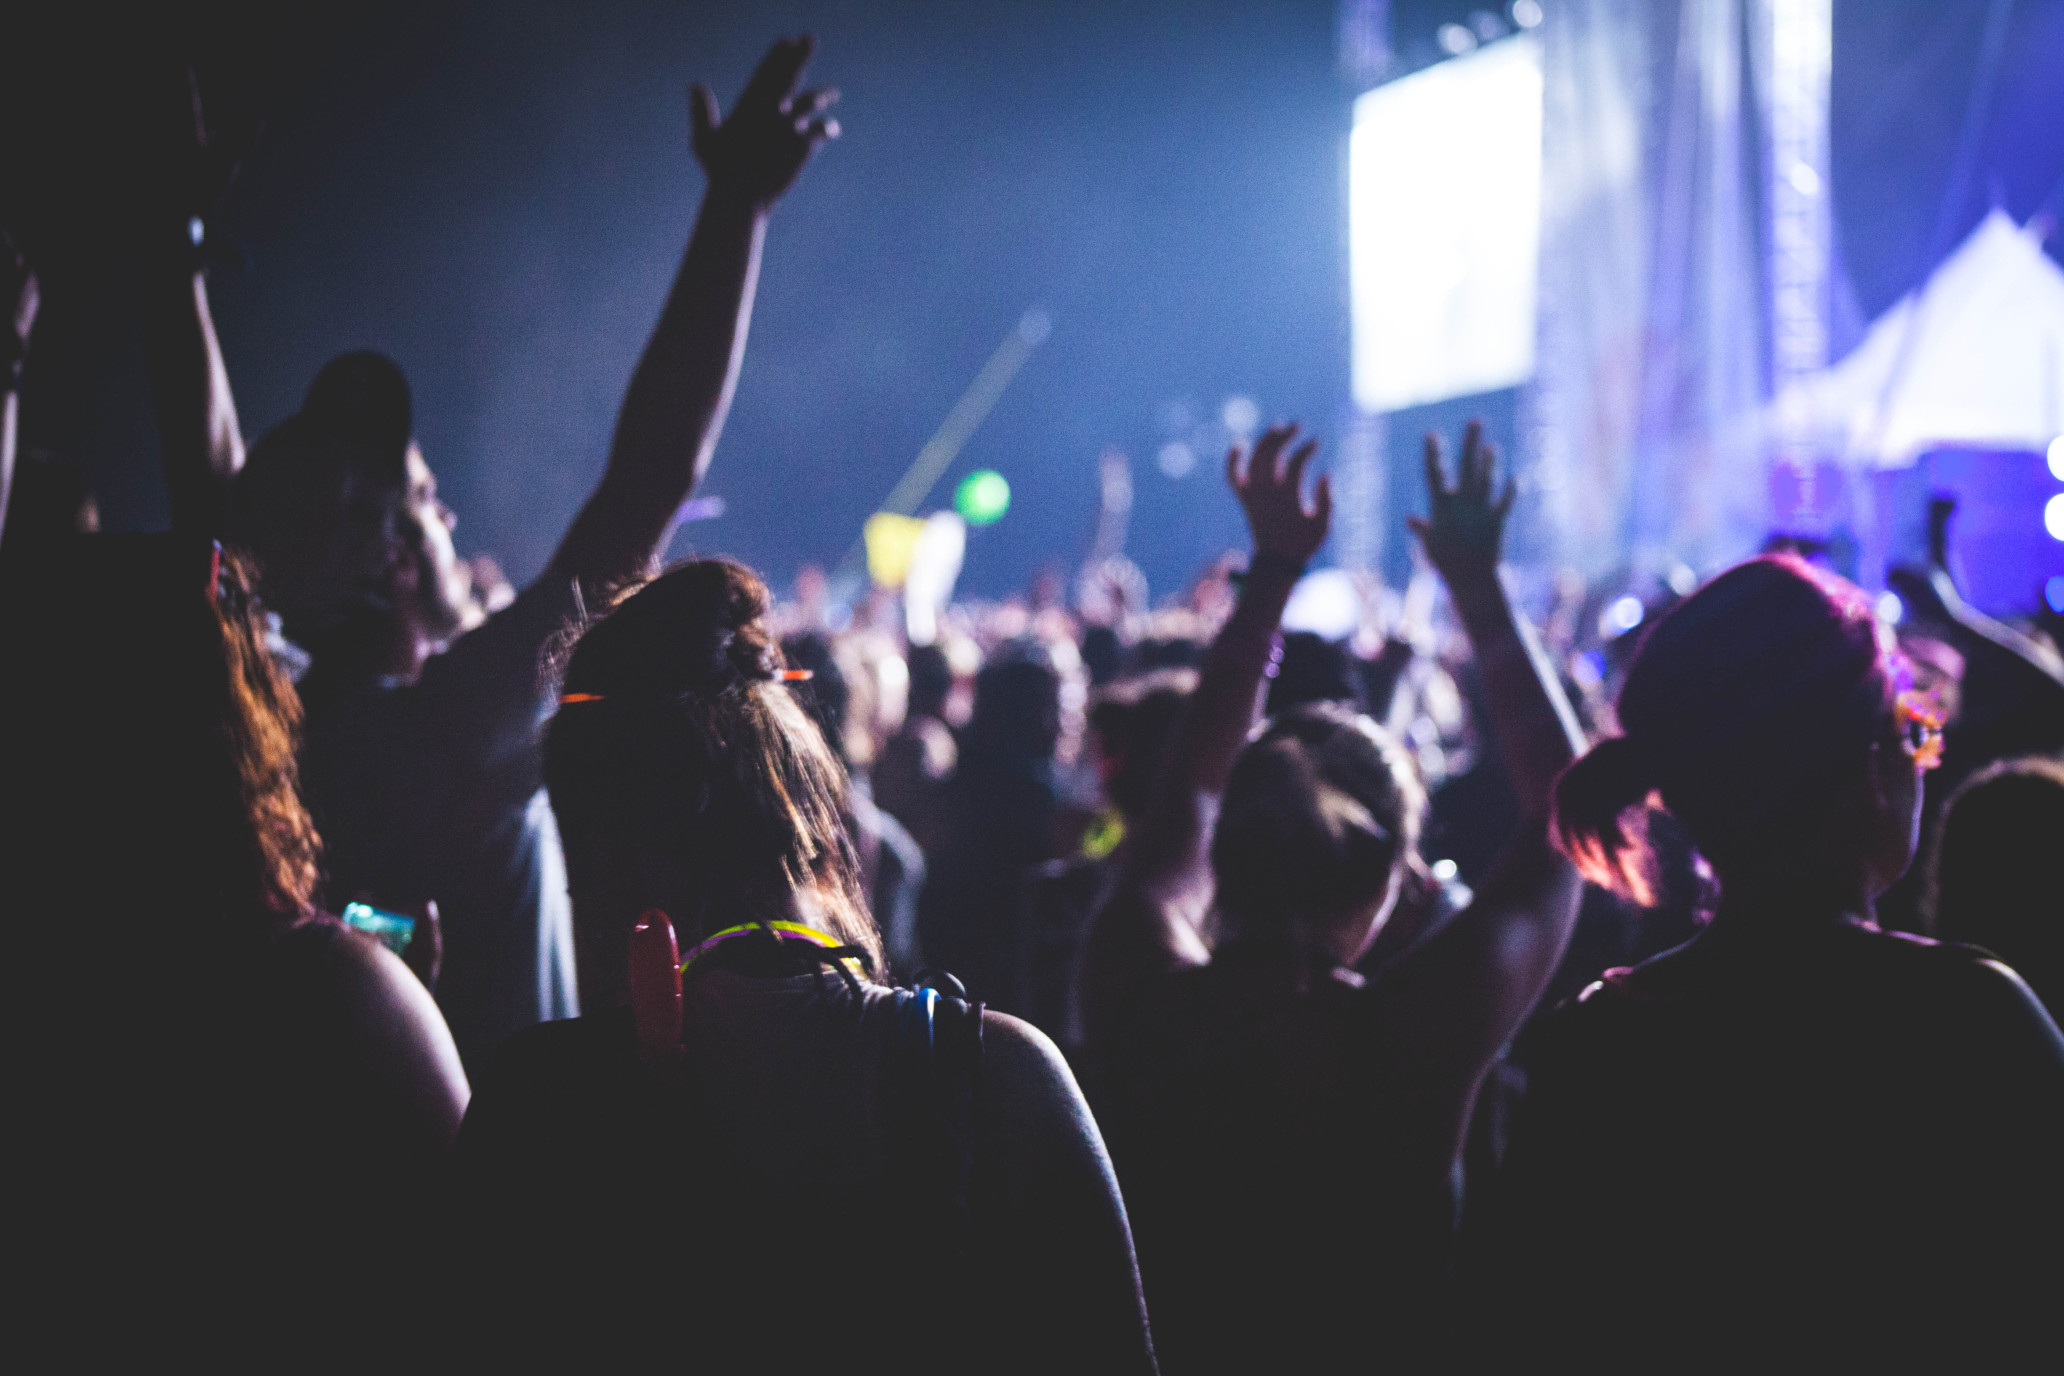 How to Promote a Music Event: 5 Tips For Sold Out Shows   Eventbrite